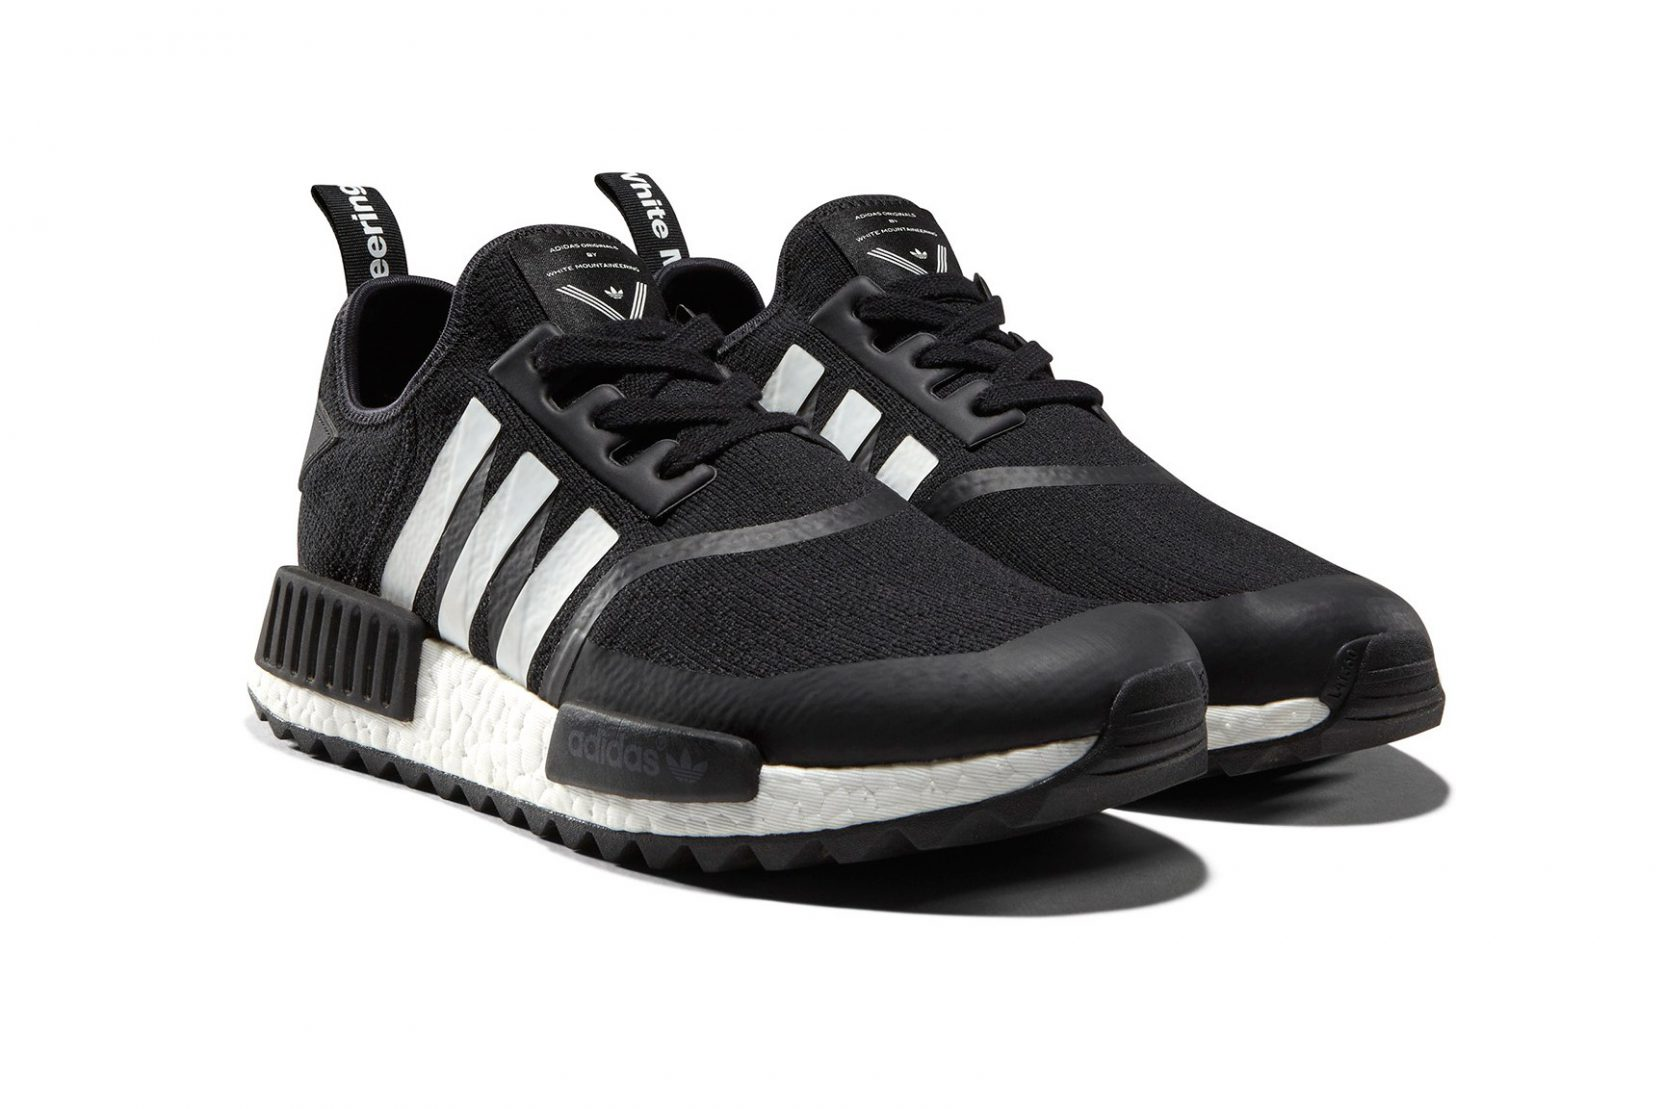 White Mountaineering x Adidas Spring Collection 3